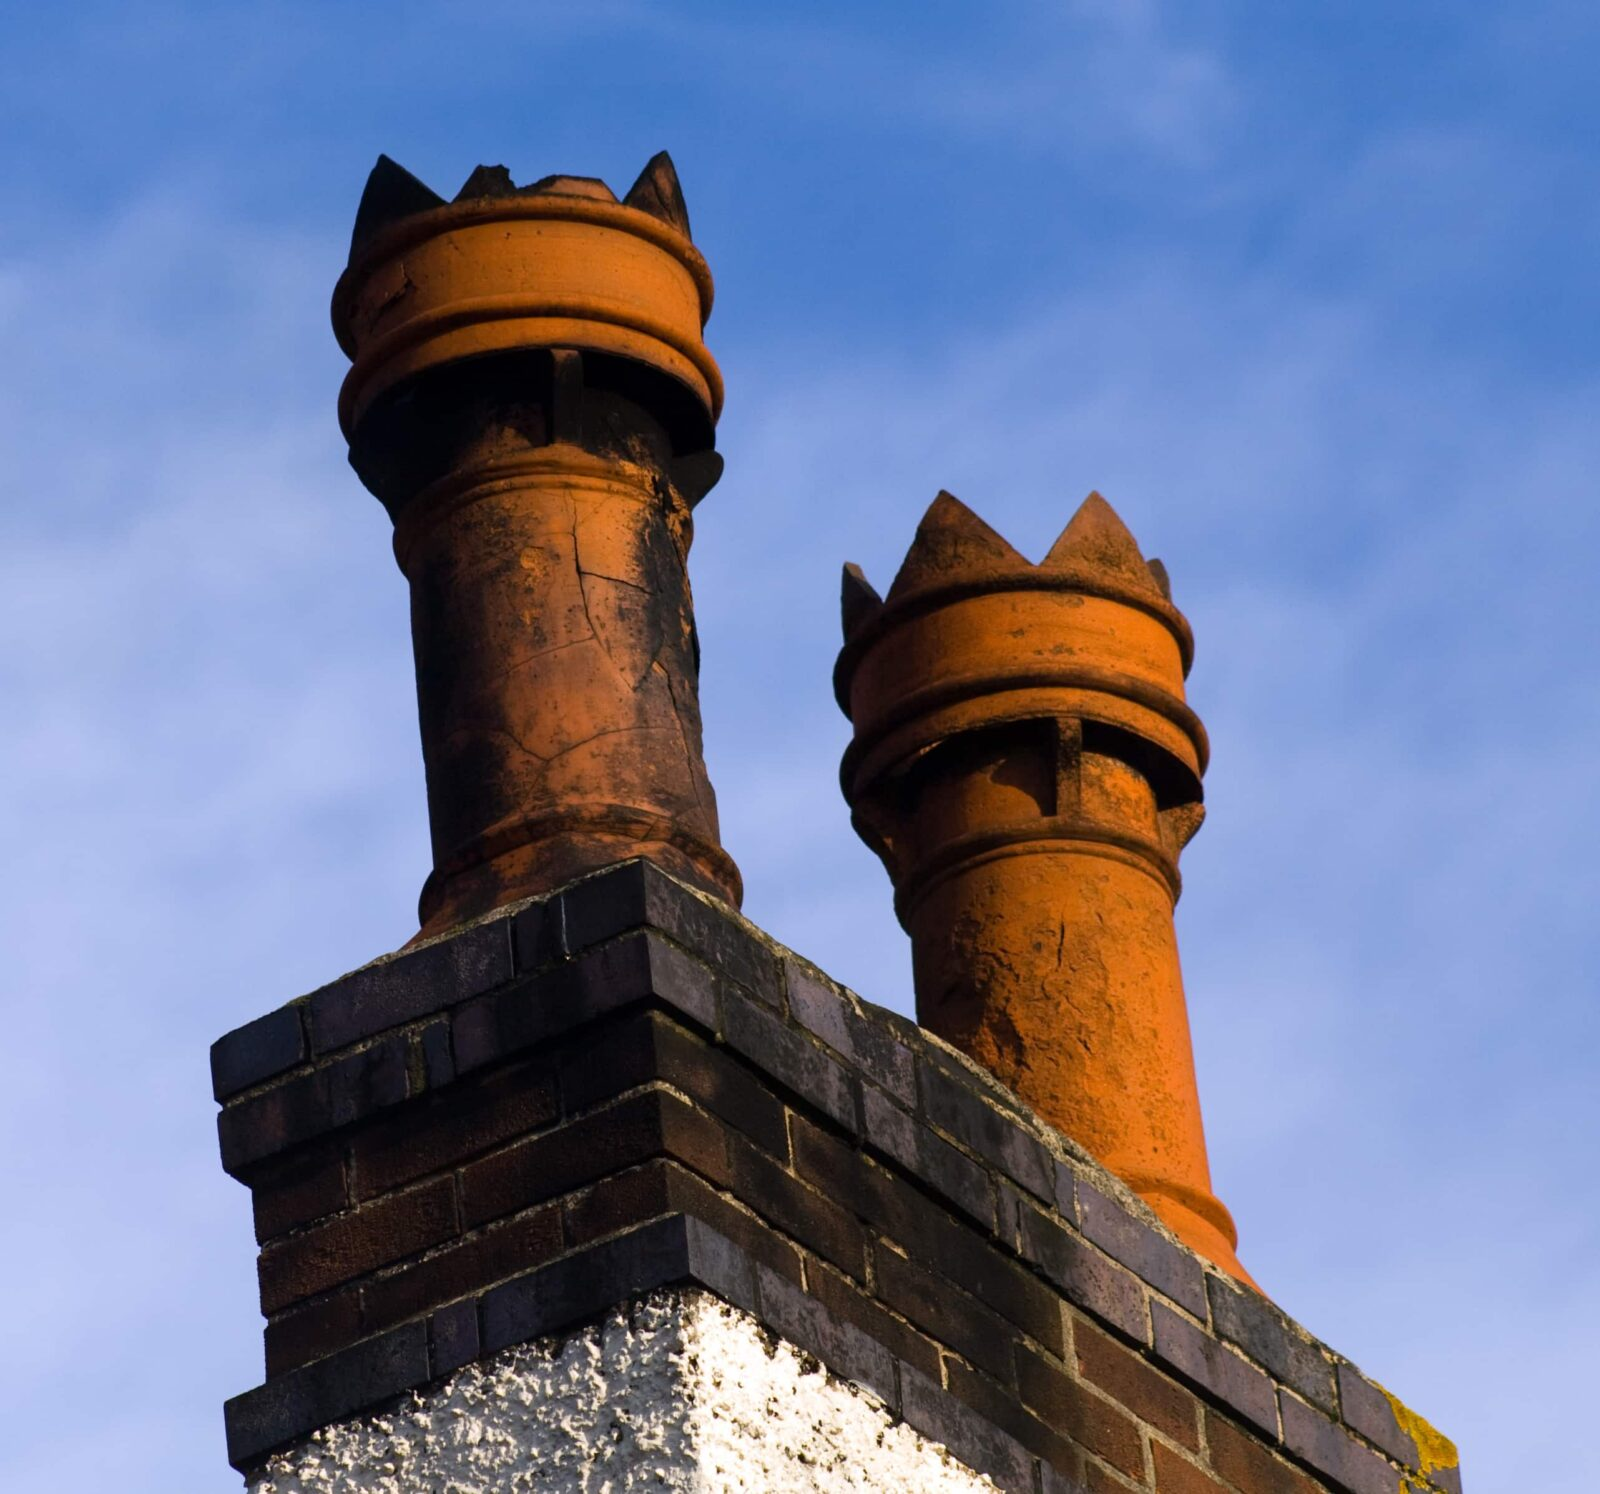 Chimney Clean Up